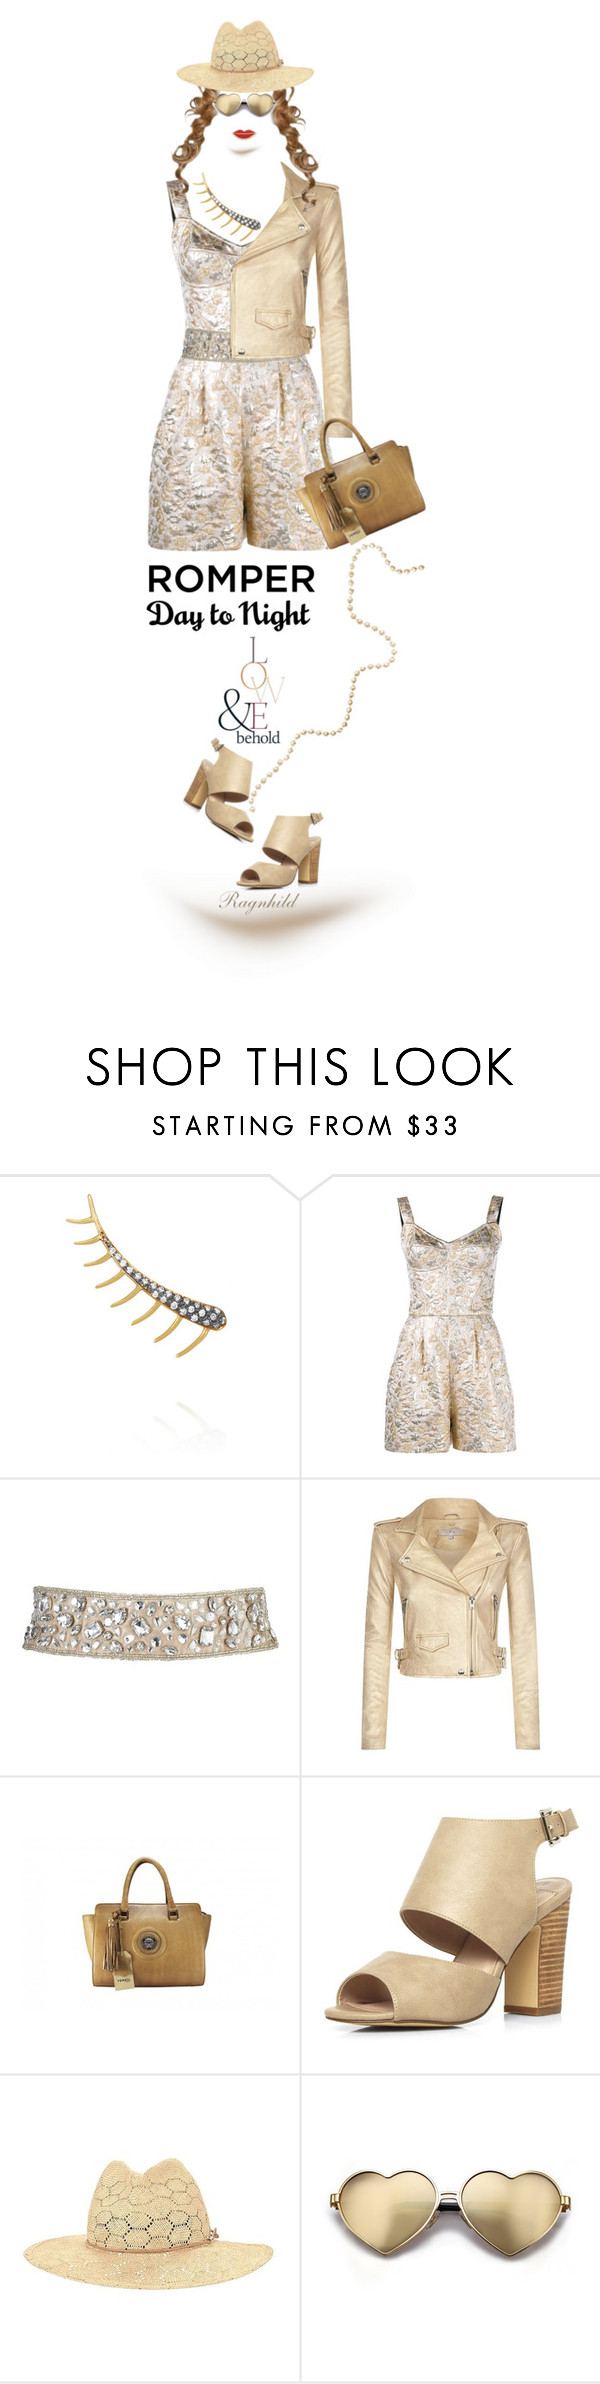 """""""Day to Night: Rompers"""" by ragnh-mjos ❤ liked on Polyvore featuring Ileana Makri, Dolce&Gabbana, IRO, Dorothy Perkins, ASOS, rag & bone, Wildfox and Georgia Perry"""